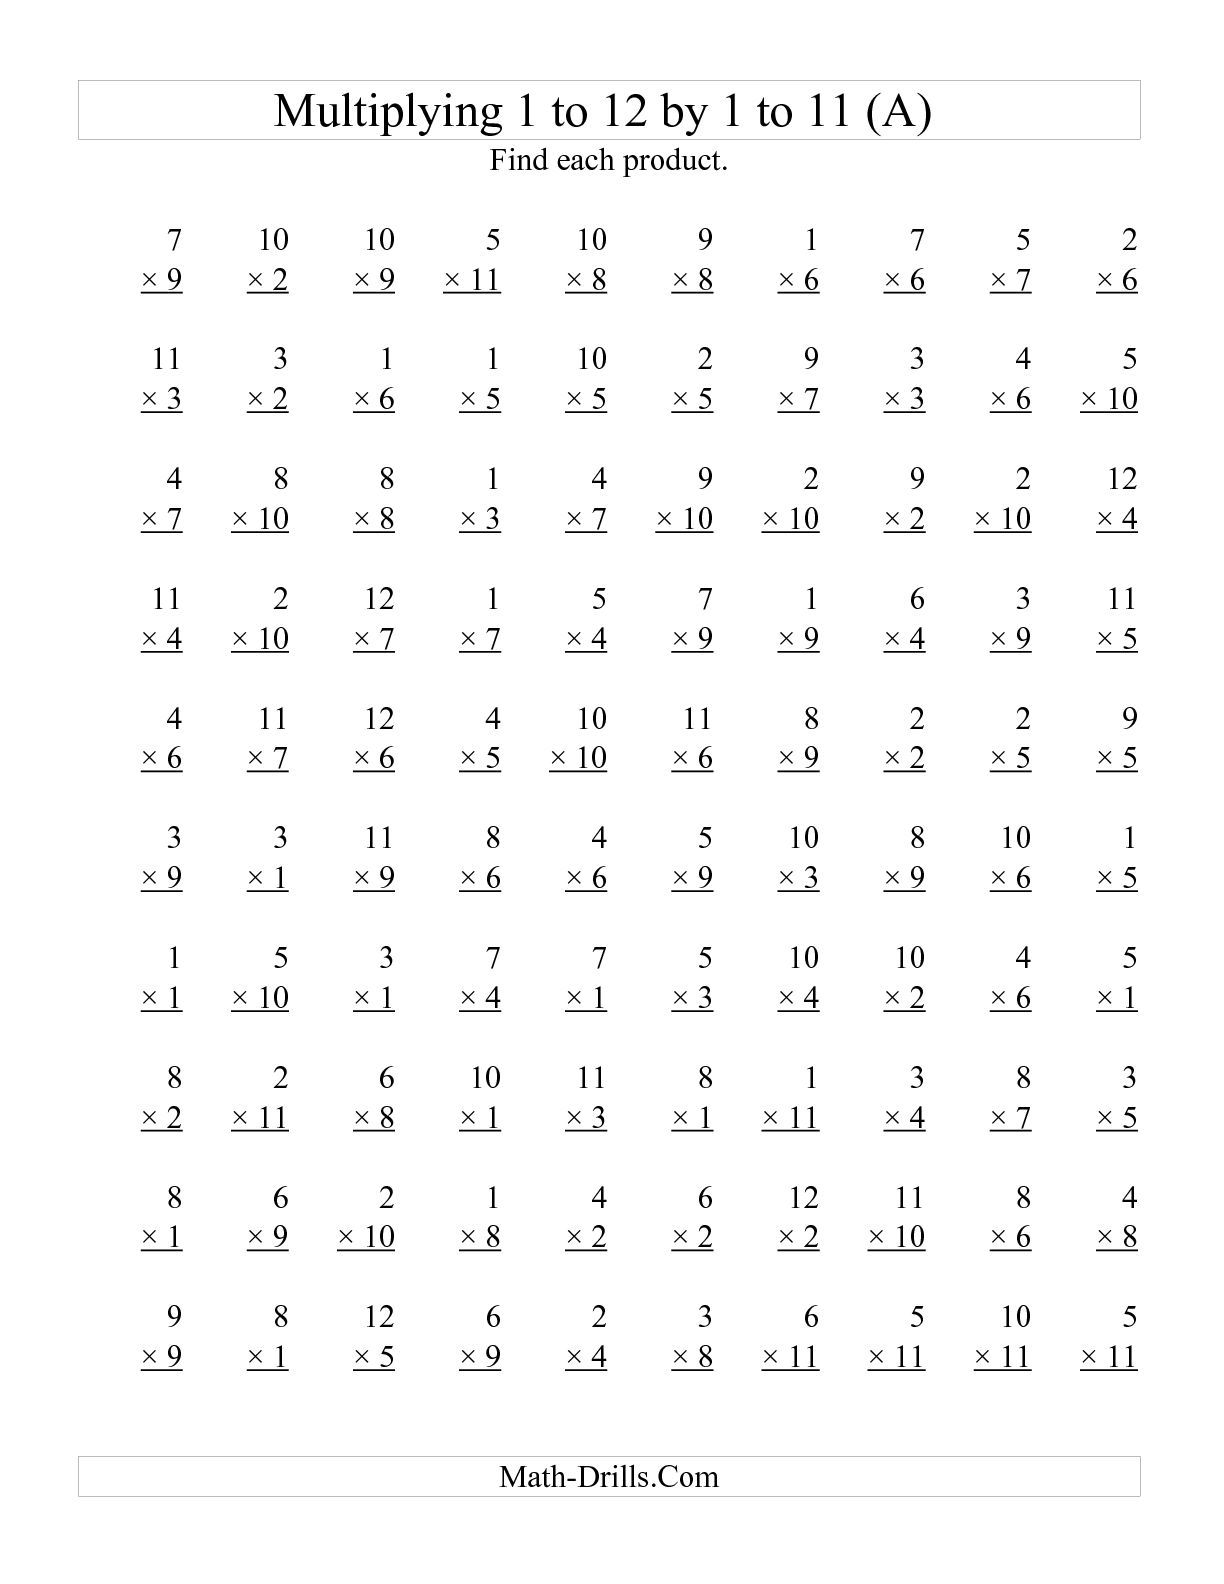 worksheet Mulitplication Worksheet the 100 vertical questions multiplying 1 to 12 by 11 a math worksheet